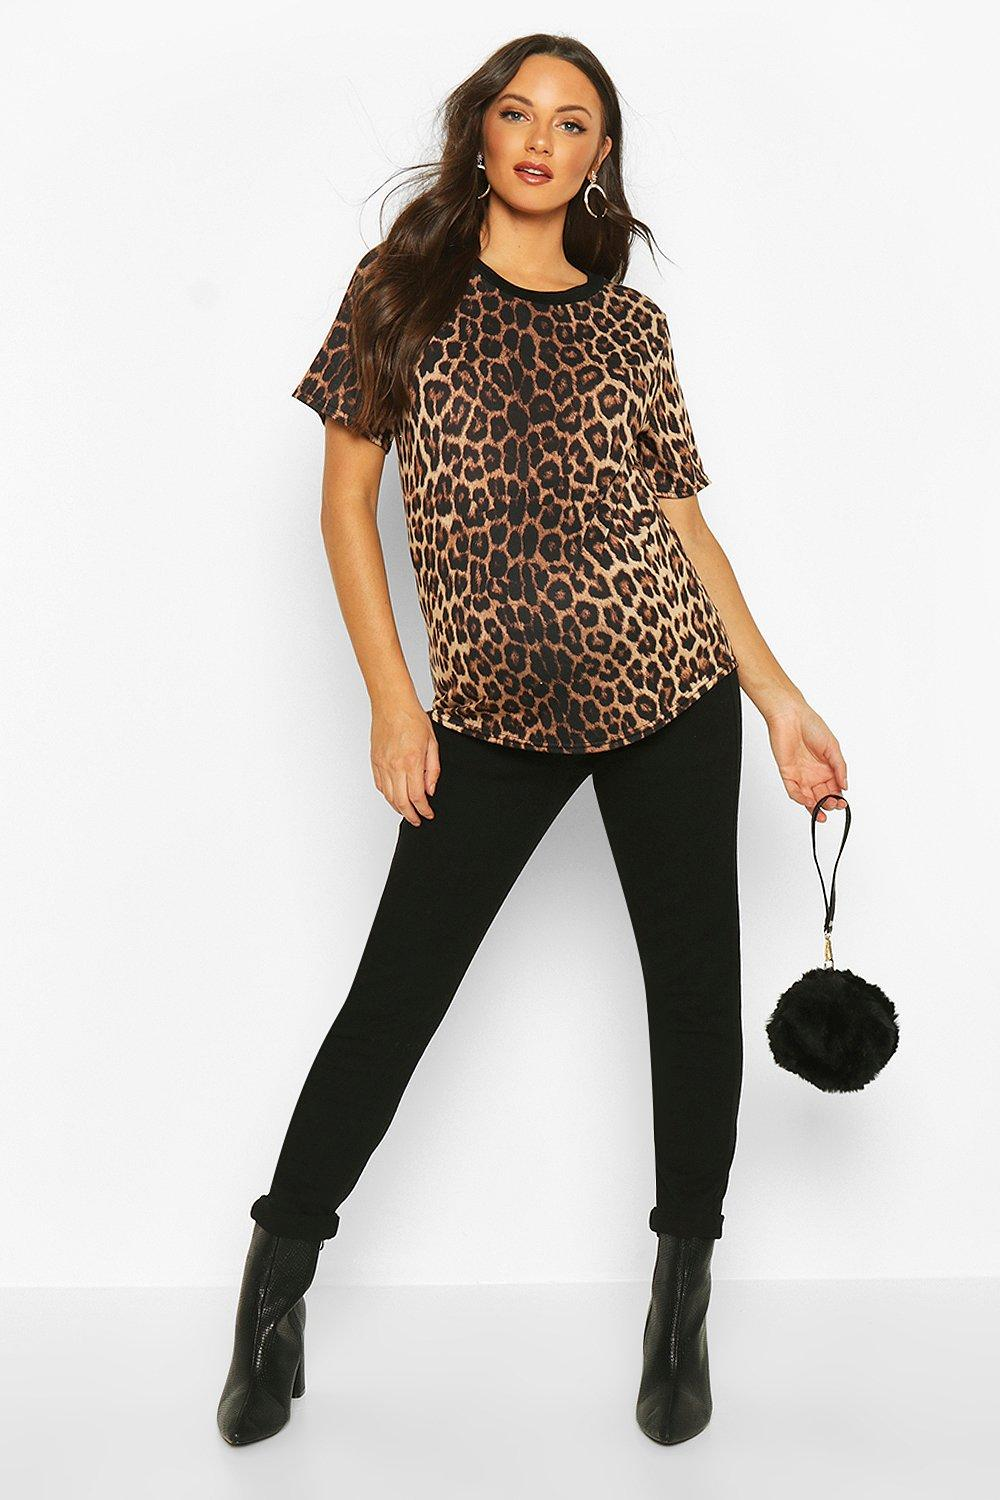 Vintage Style Maternity Clothes Womens Maternity Leopard Ringer Tee - brown - 12 $25.00 AT vintagedancer.com